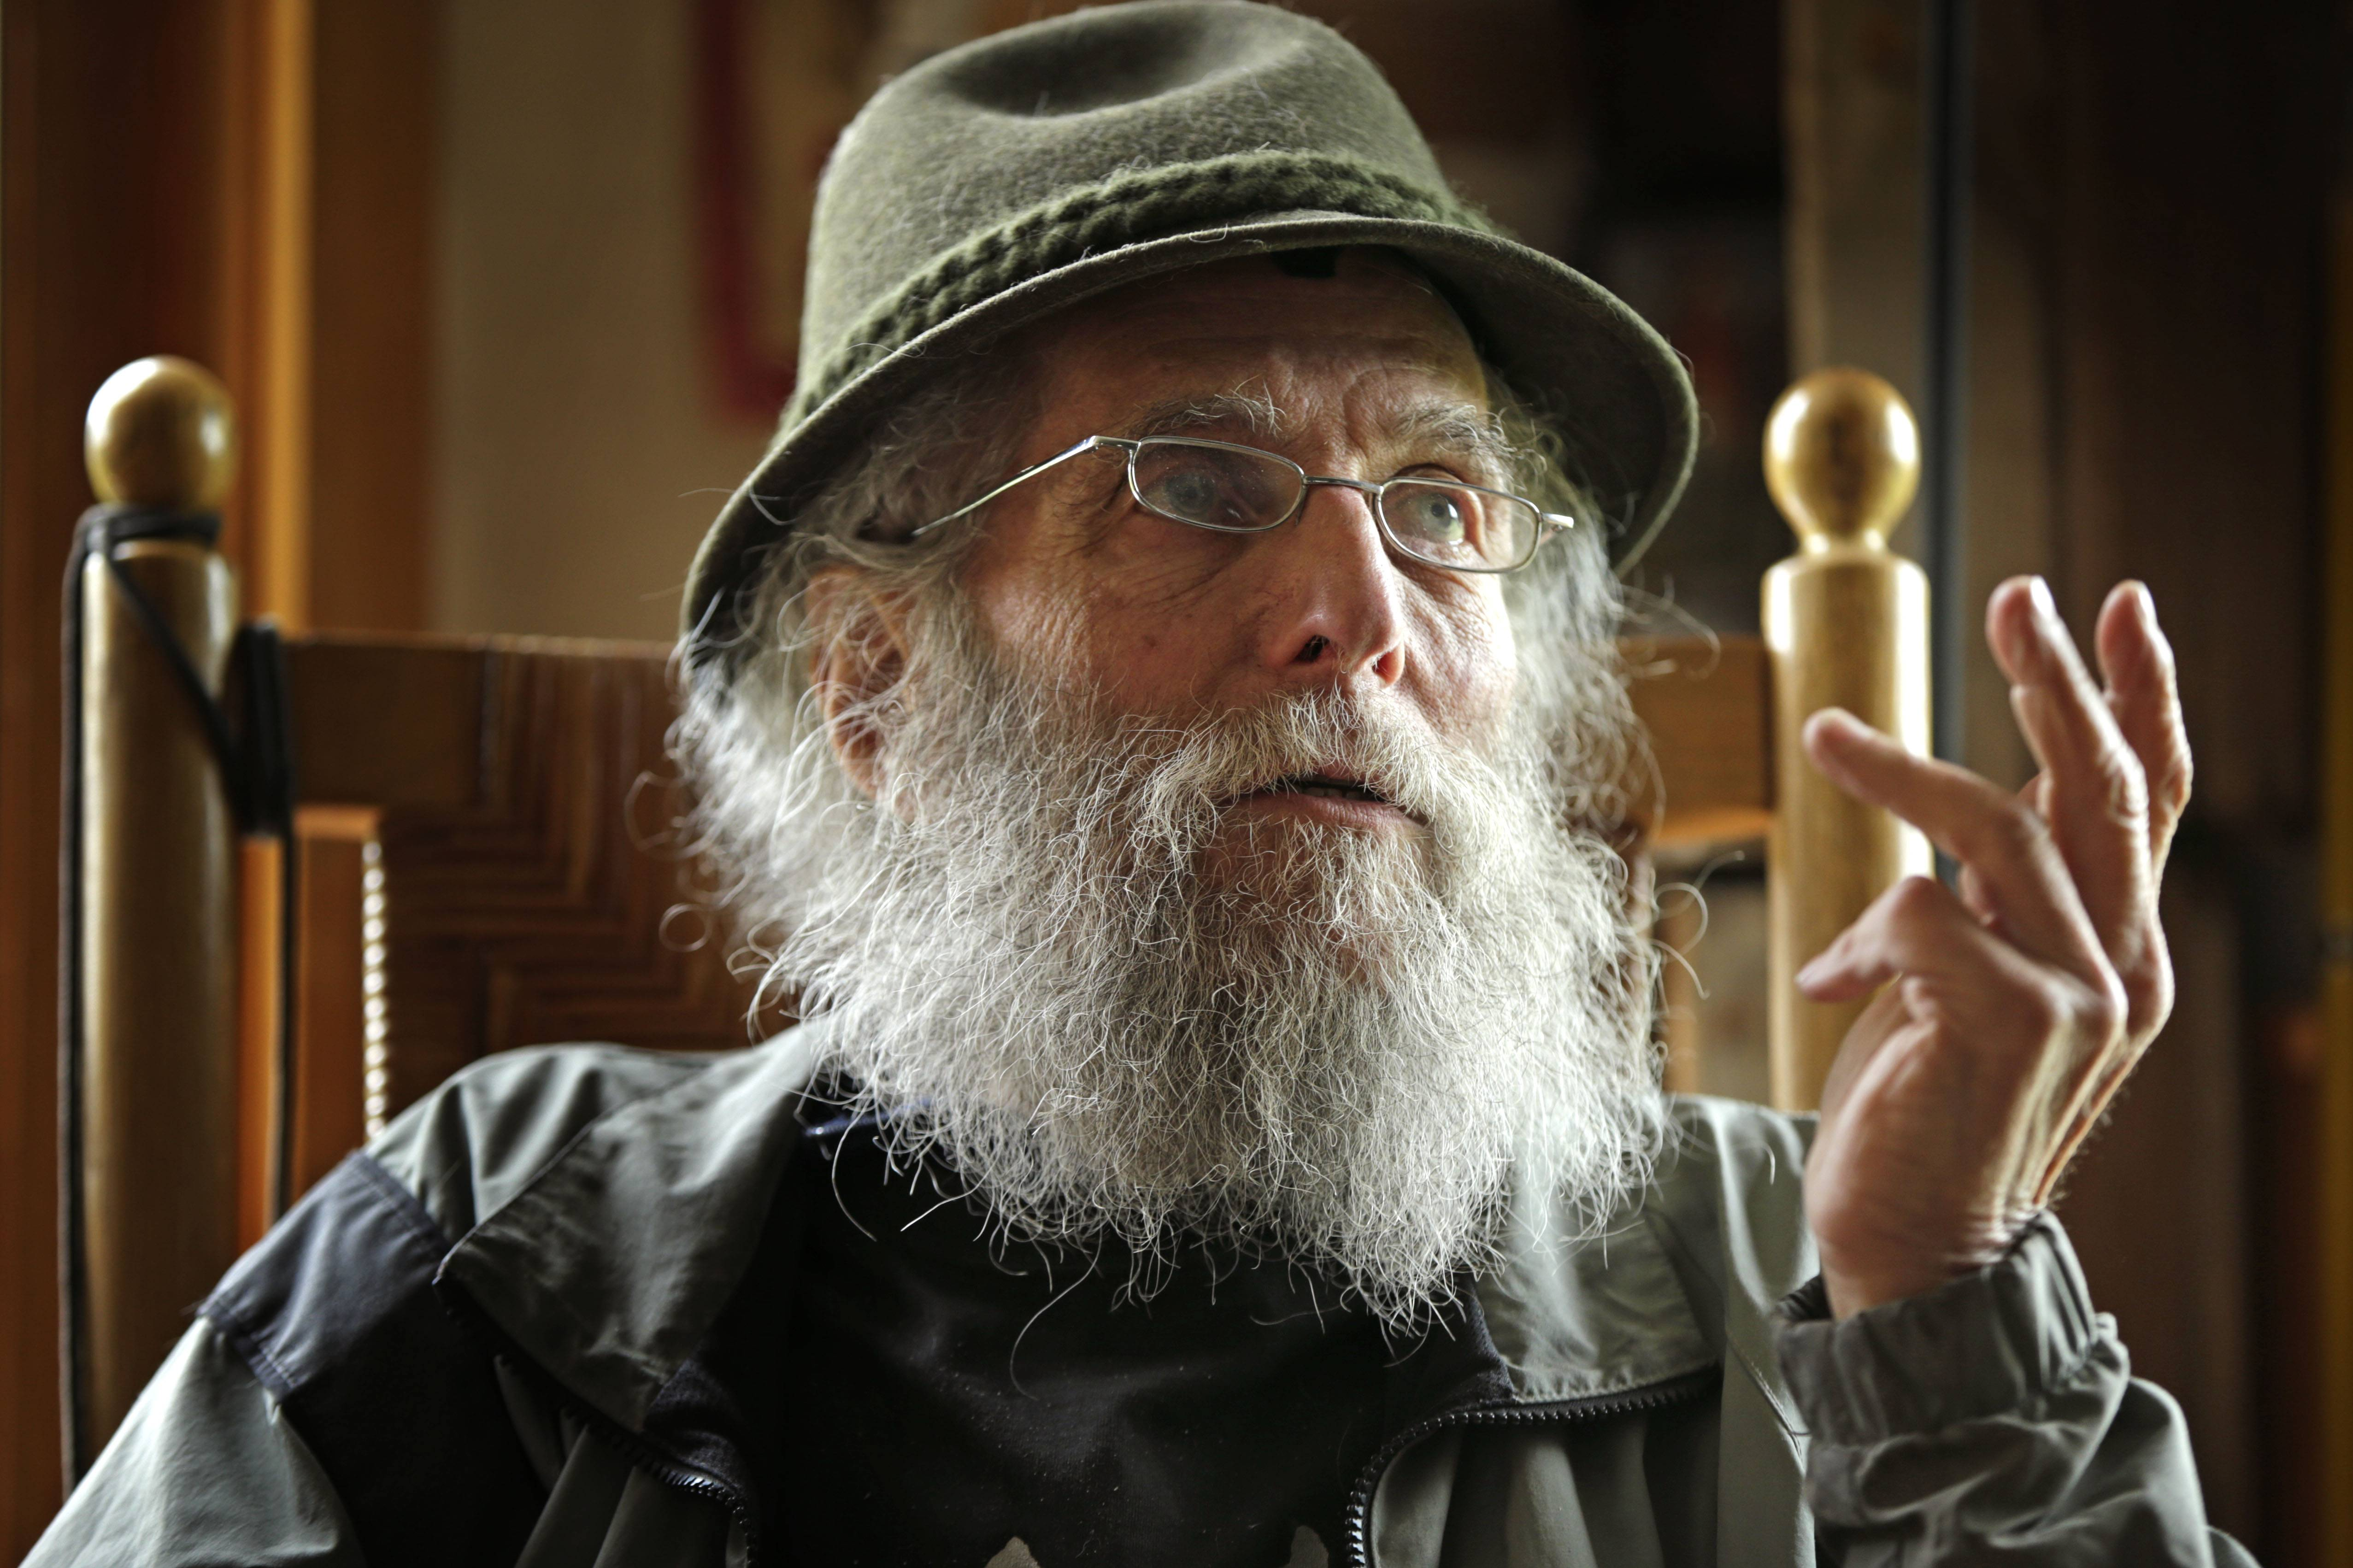 "Burt Shavitz, a former beekeeper, is the Burt behind Burt's Bees. The reclusive beekeeper whose simple life became complicated by his status as a corporate icon is now the subject of a documentary, ""Burt's Buzz,"" which opens Friday."